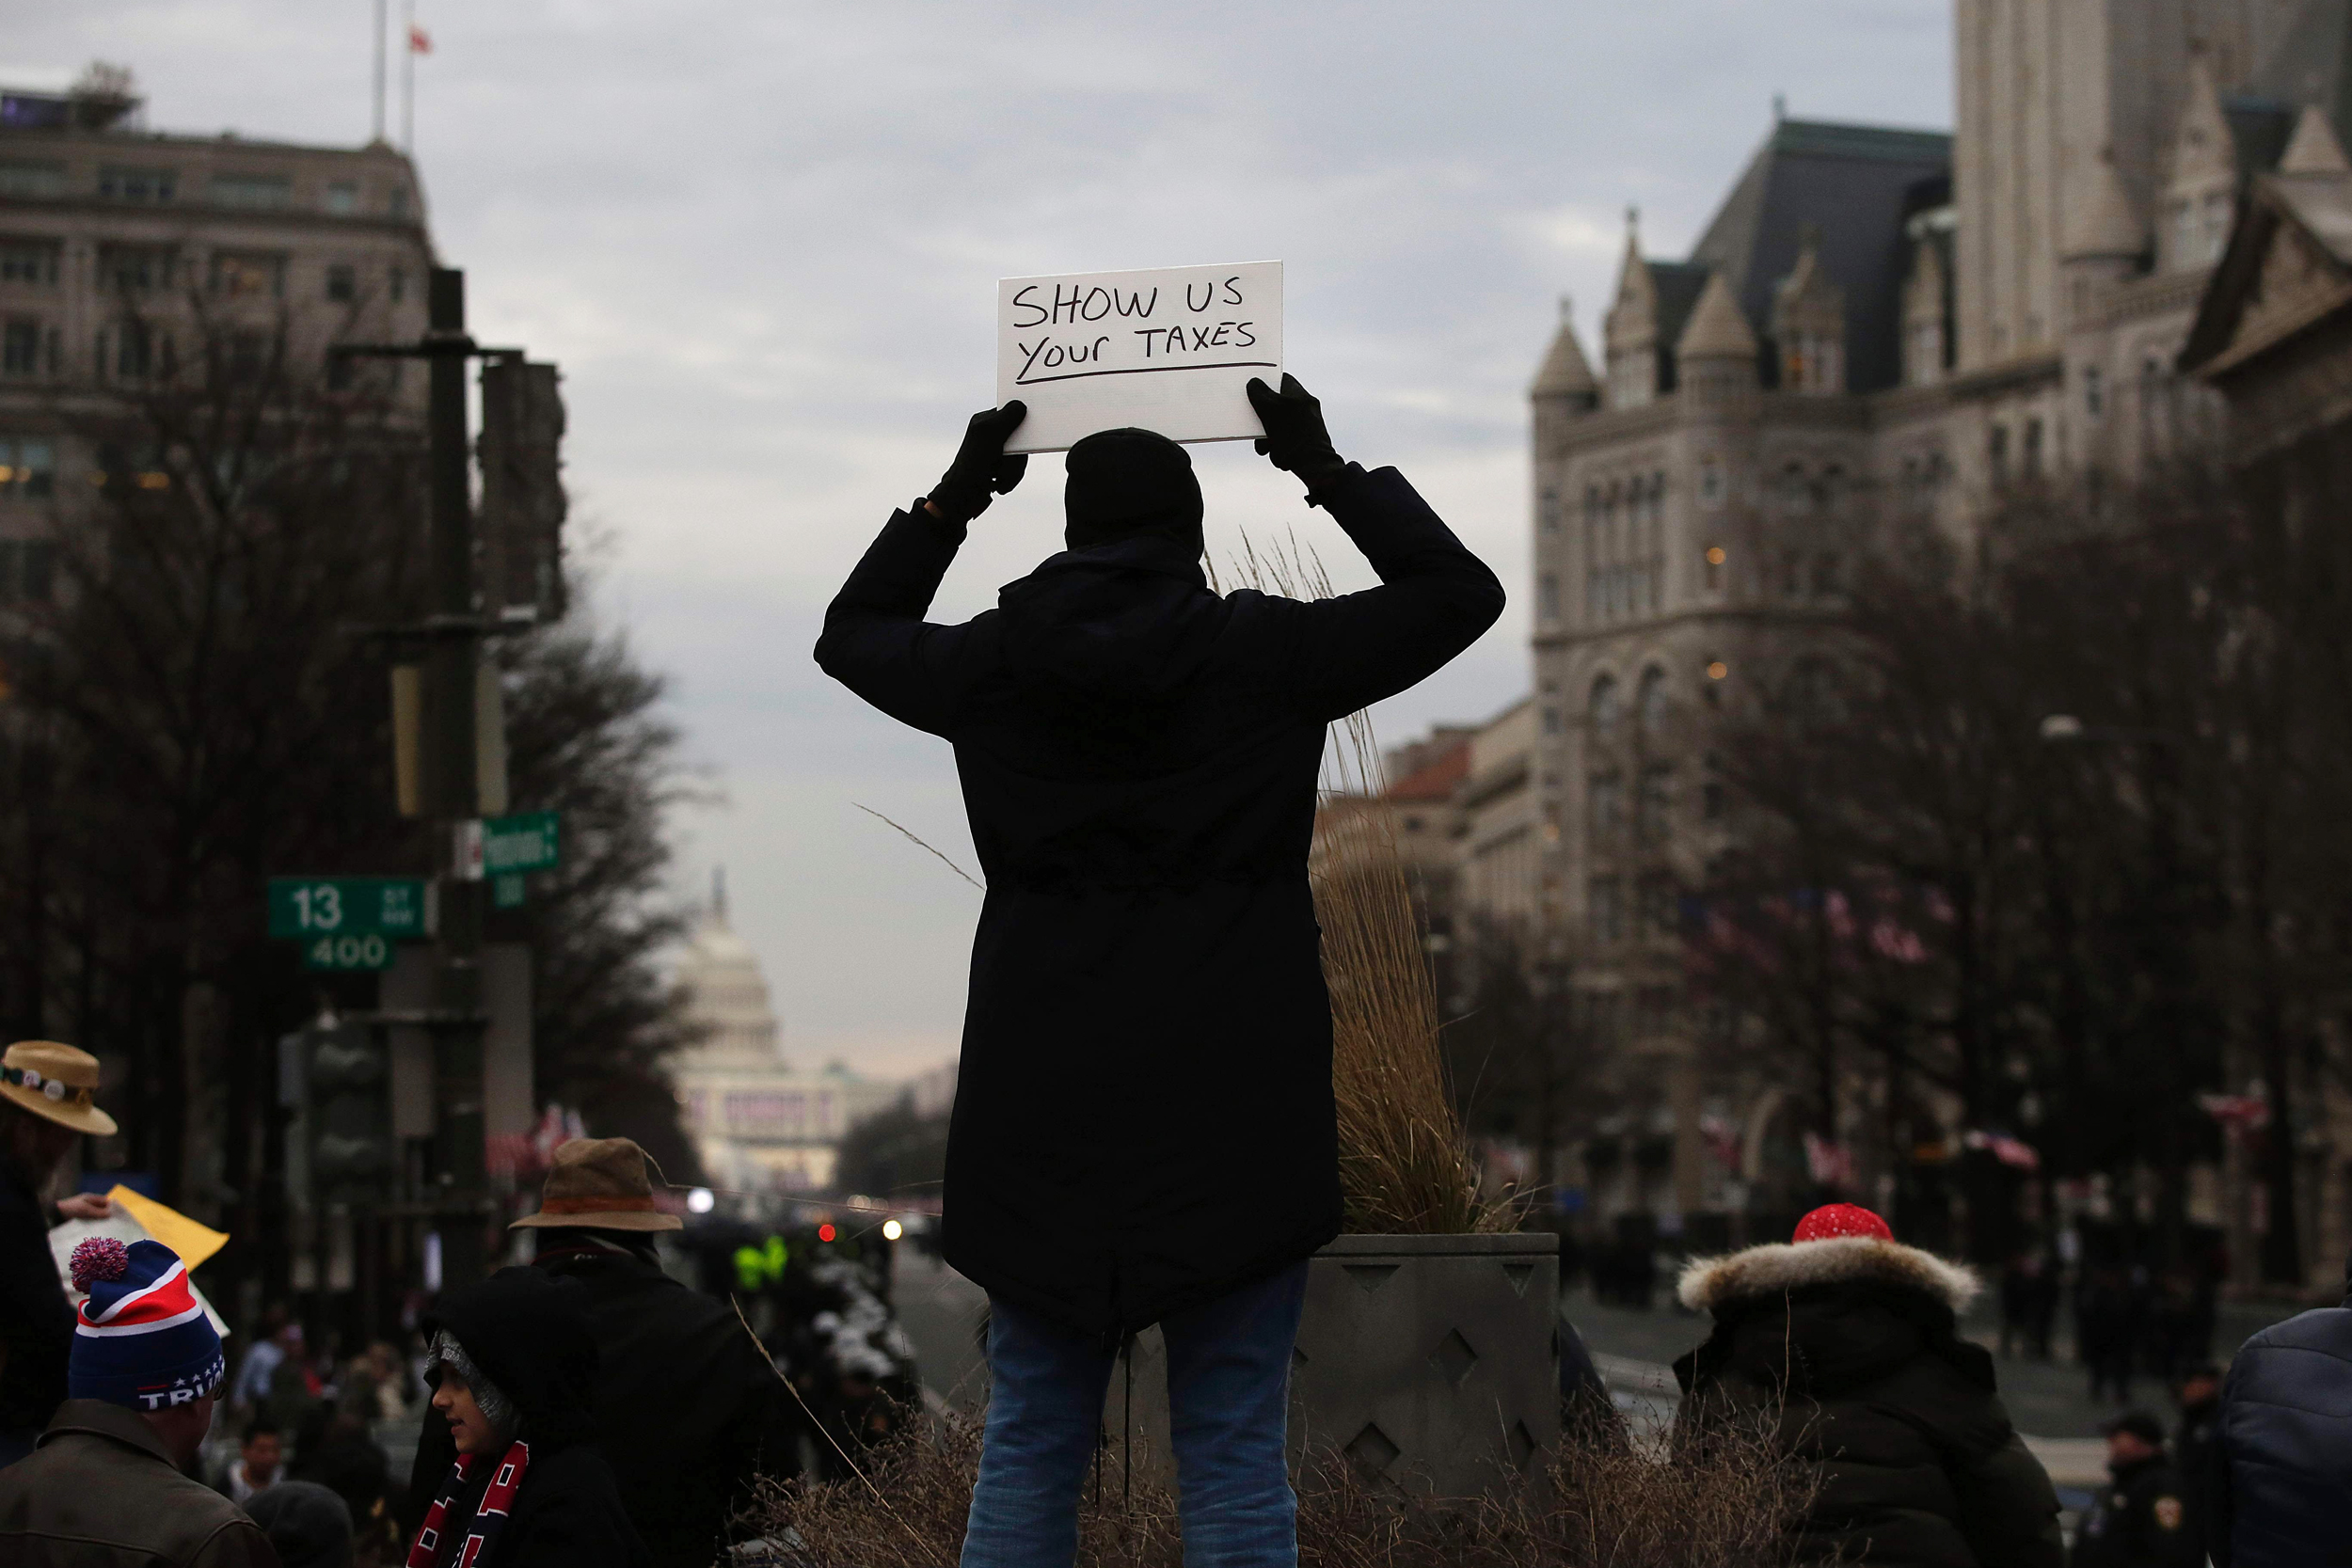 Image: A person holds up a sign in protest before the presidential inauguration of Donald Trump